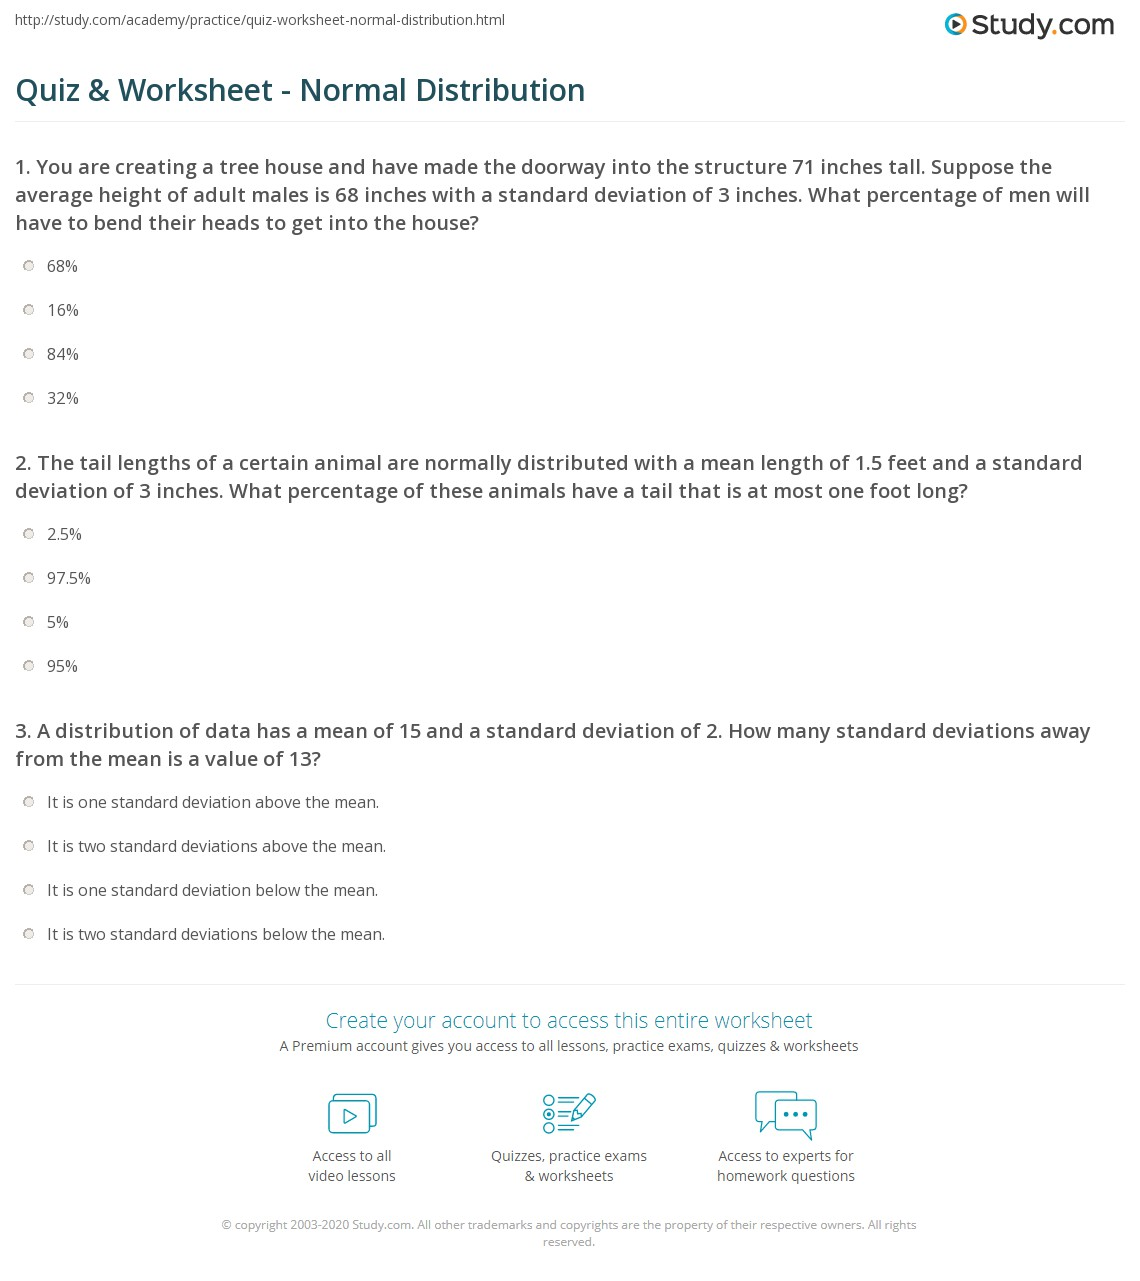 Worksheets Normal Distribution Worksheet quiz worksheet normal distribution study com 1 the tail lengths of a certain animal are normally distributed with mean length 5 feet and standard deviation 3 inches